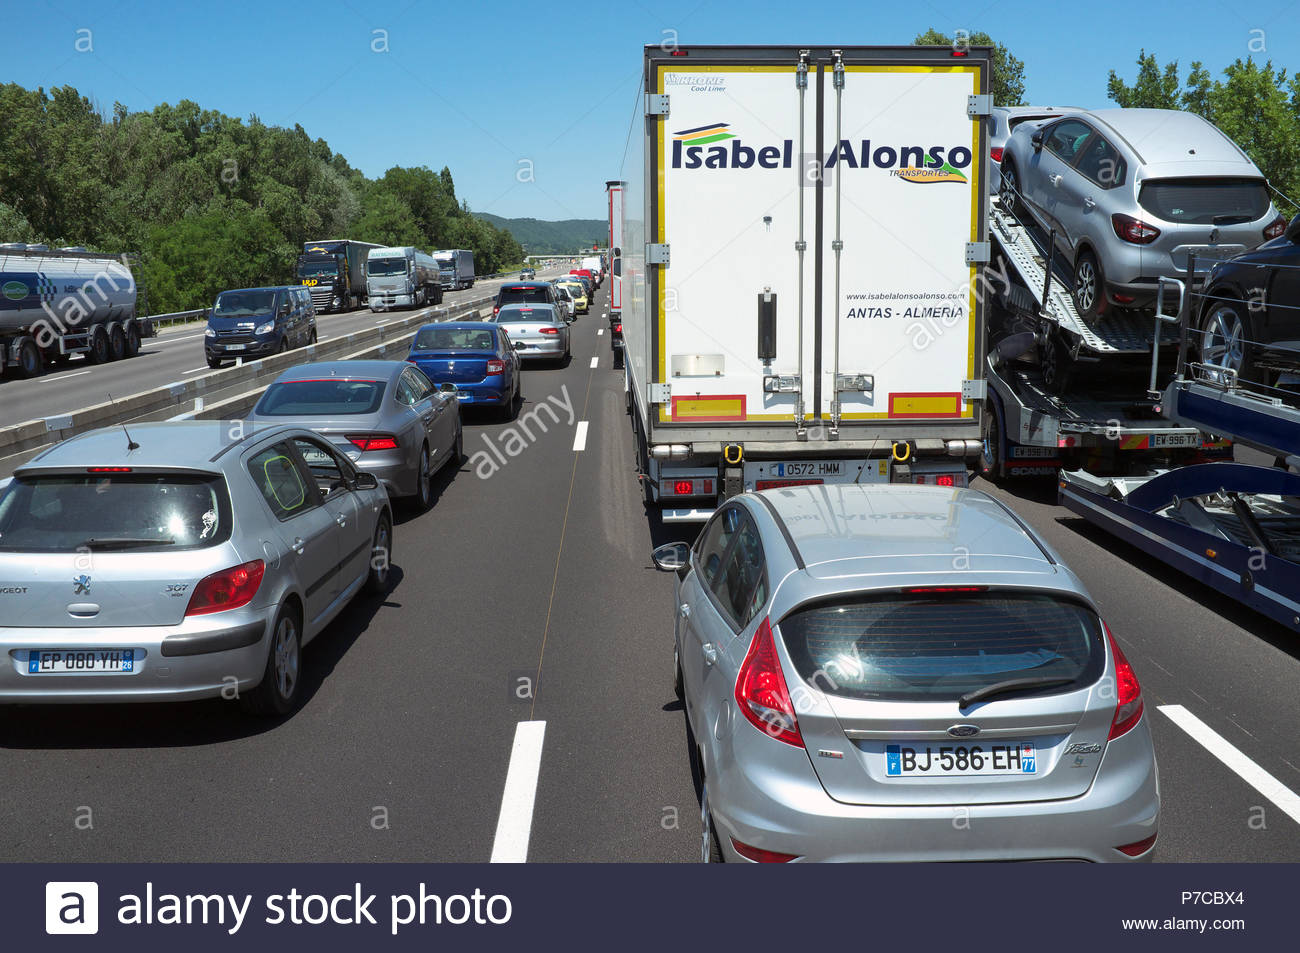 Heavy traffic congestion on the A7 autoroute (north), near Montélimar in southern France. - Stock Image